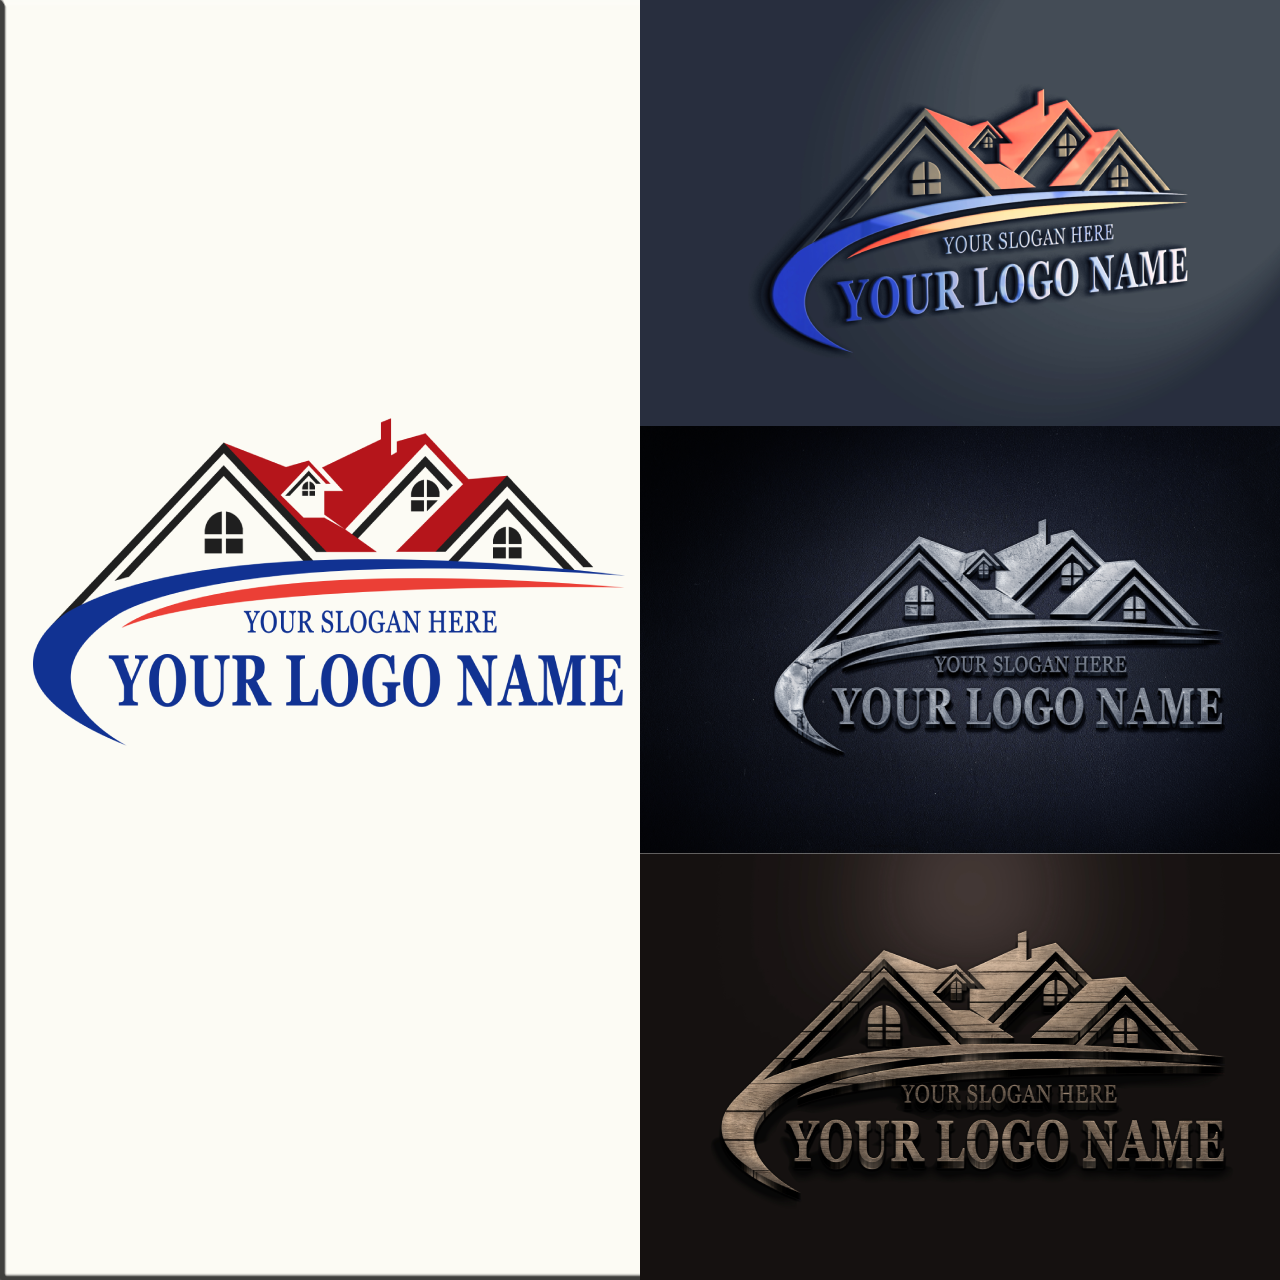 I will convert your transparent logo or text into 3D-MOCK UP design